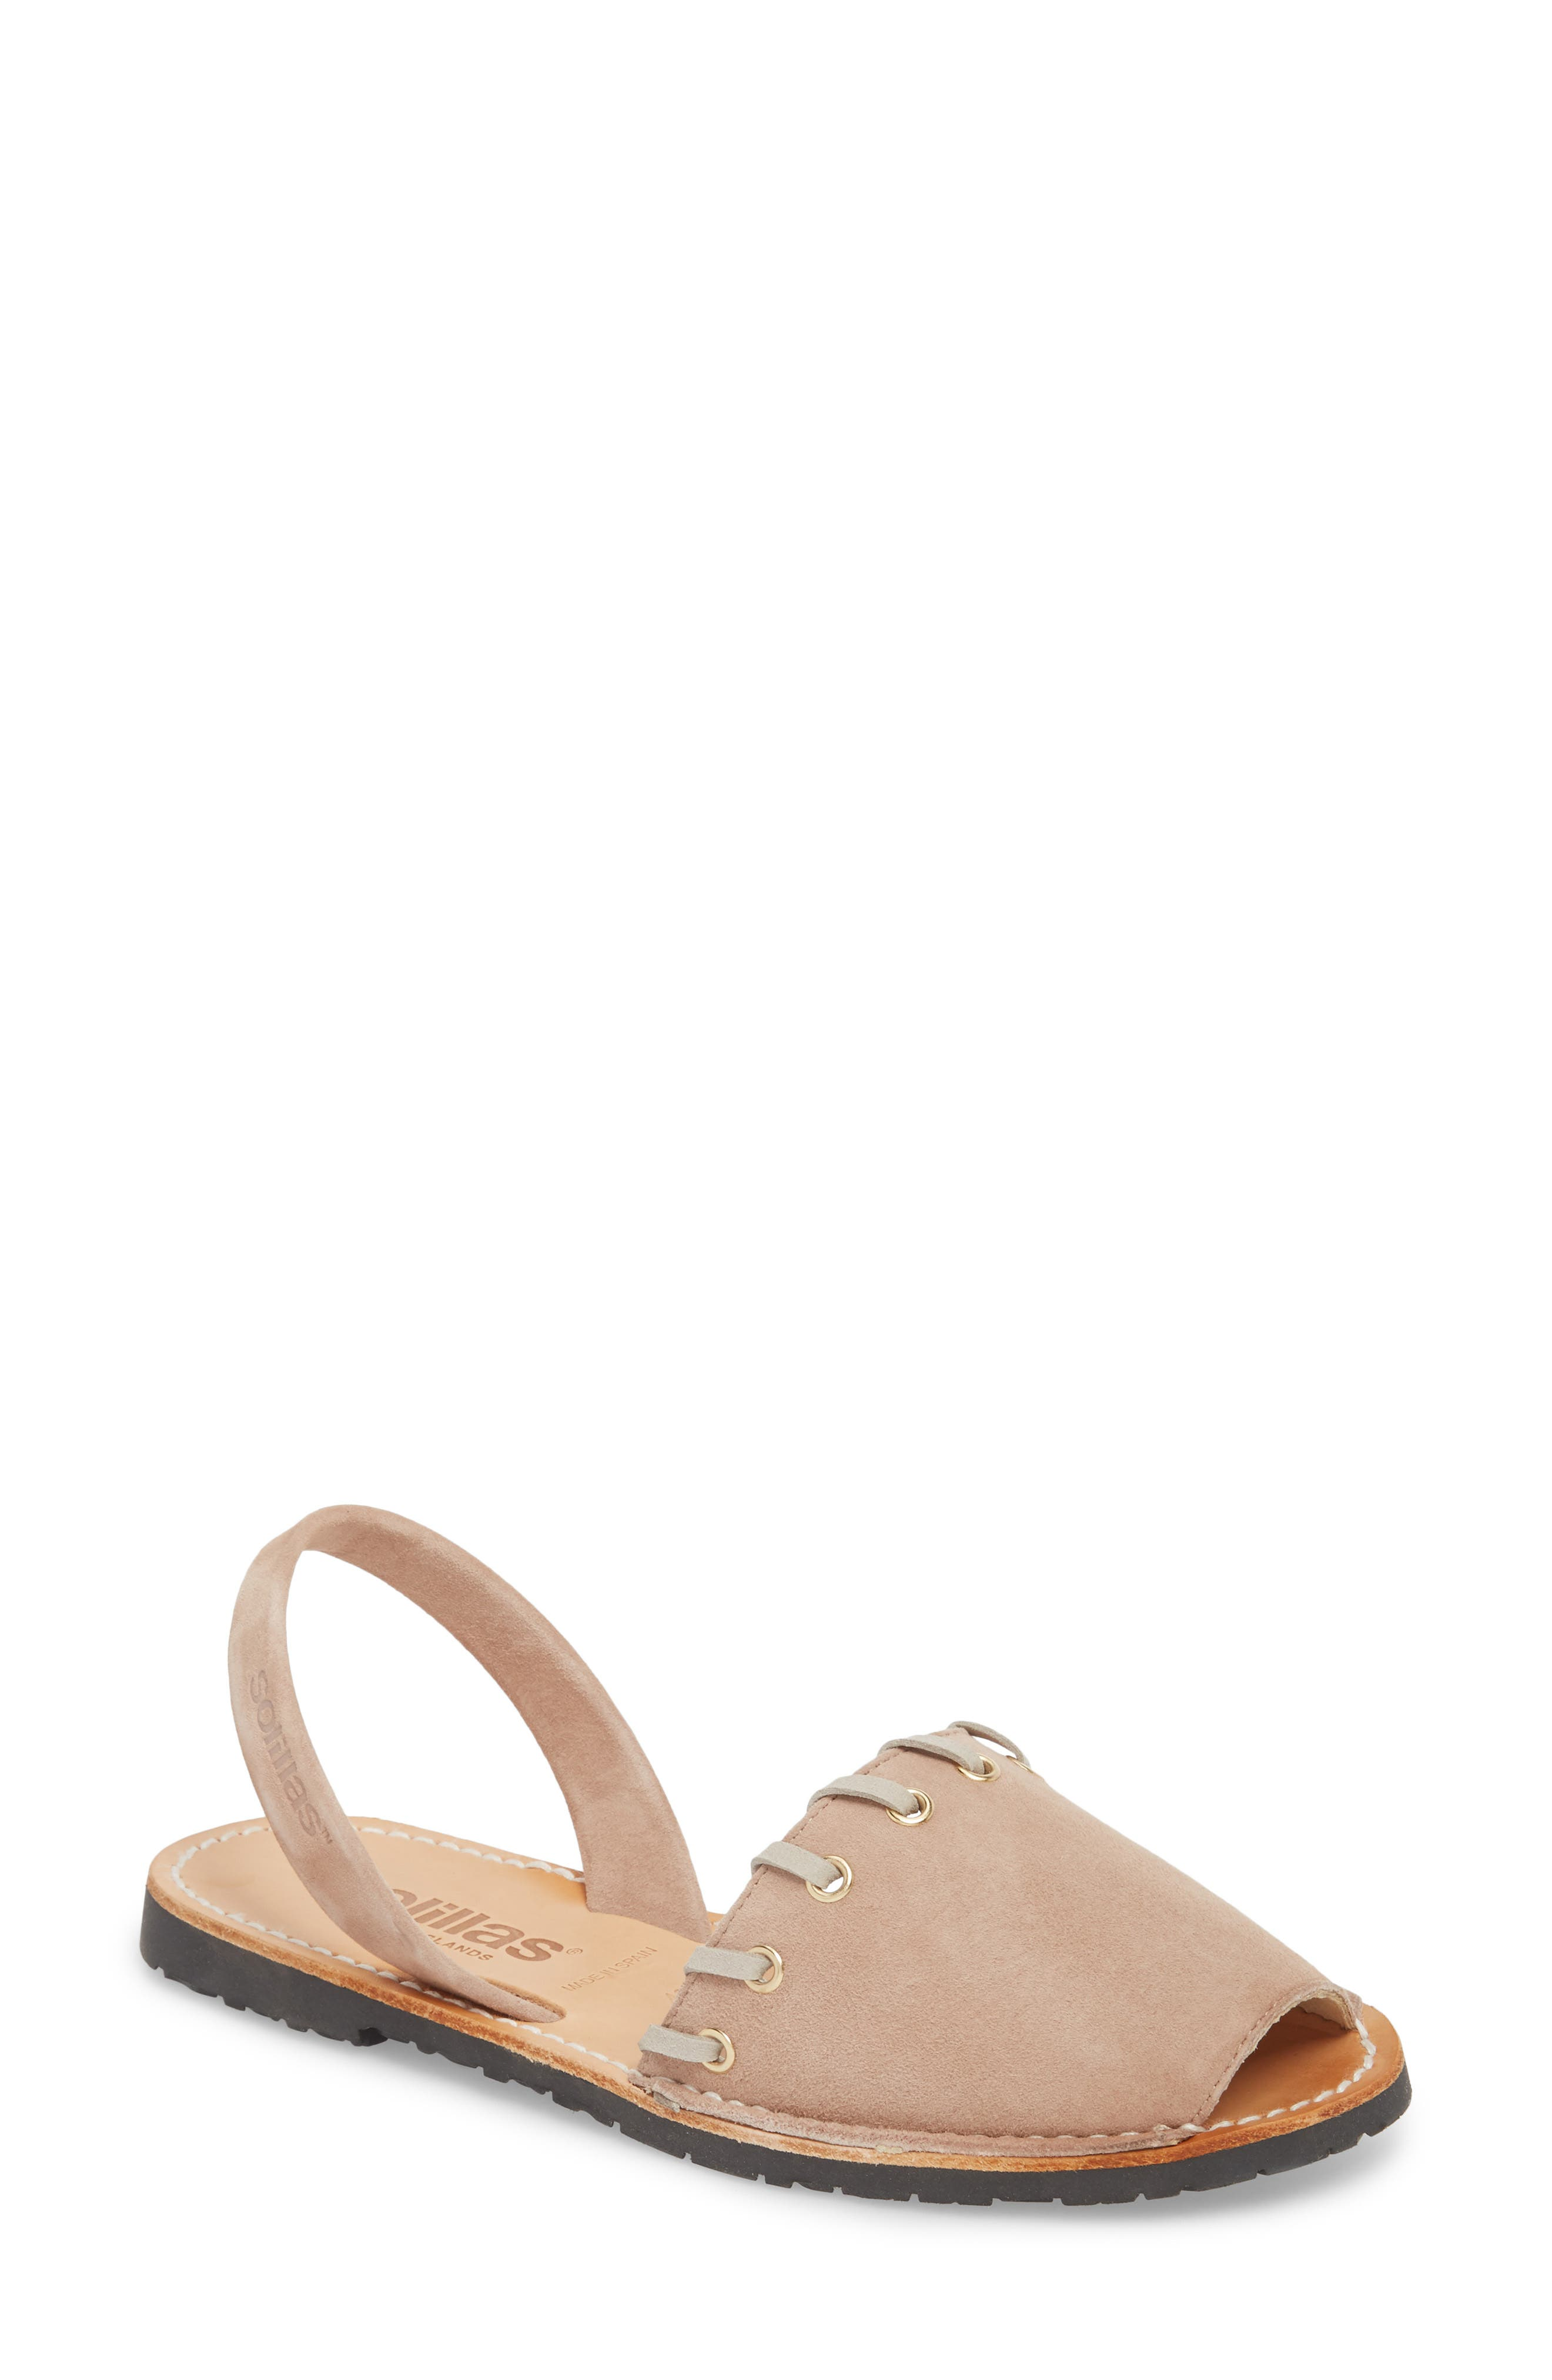 Whipstitched Flat Sandal,                         Main,                         color,